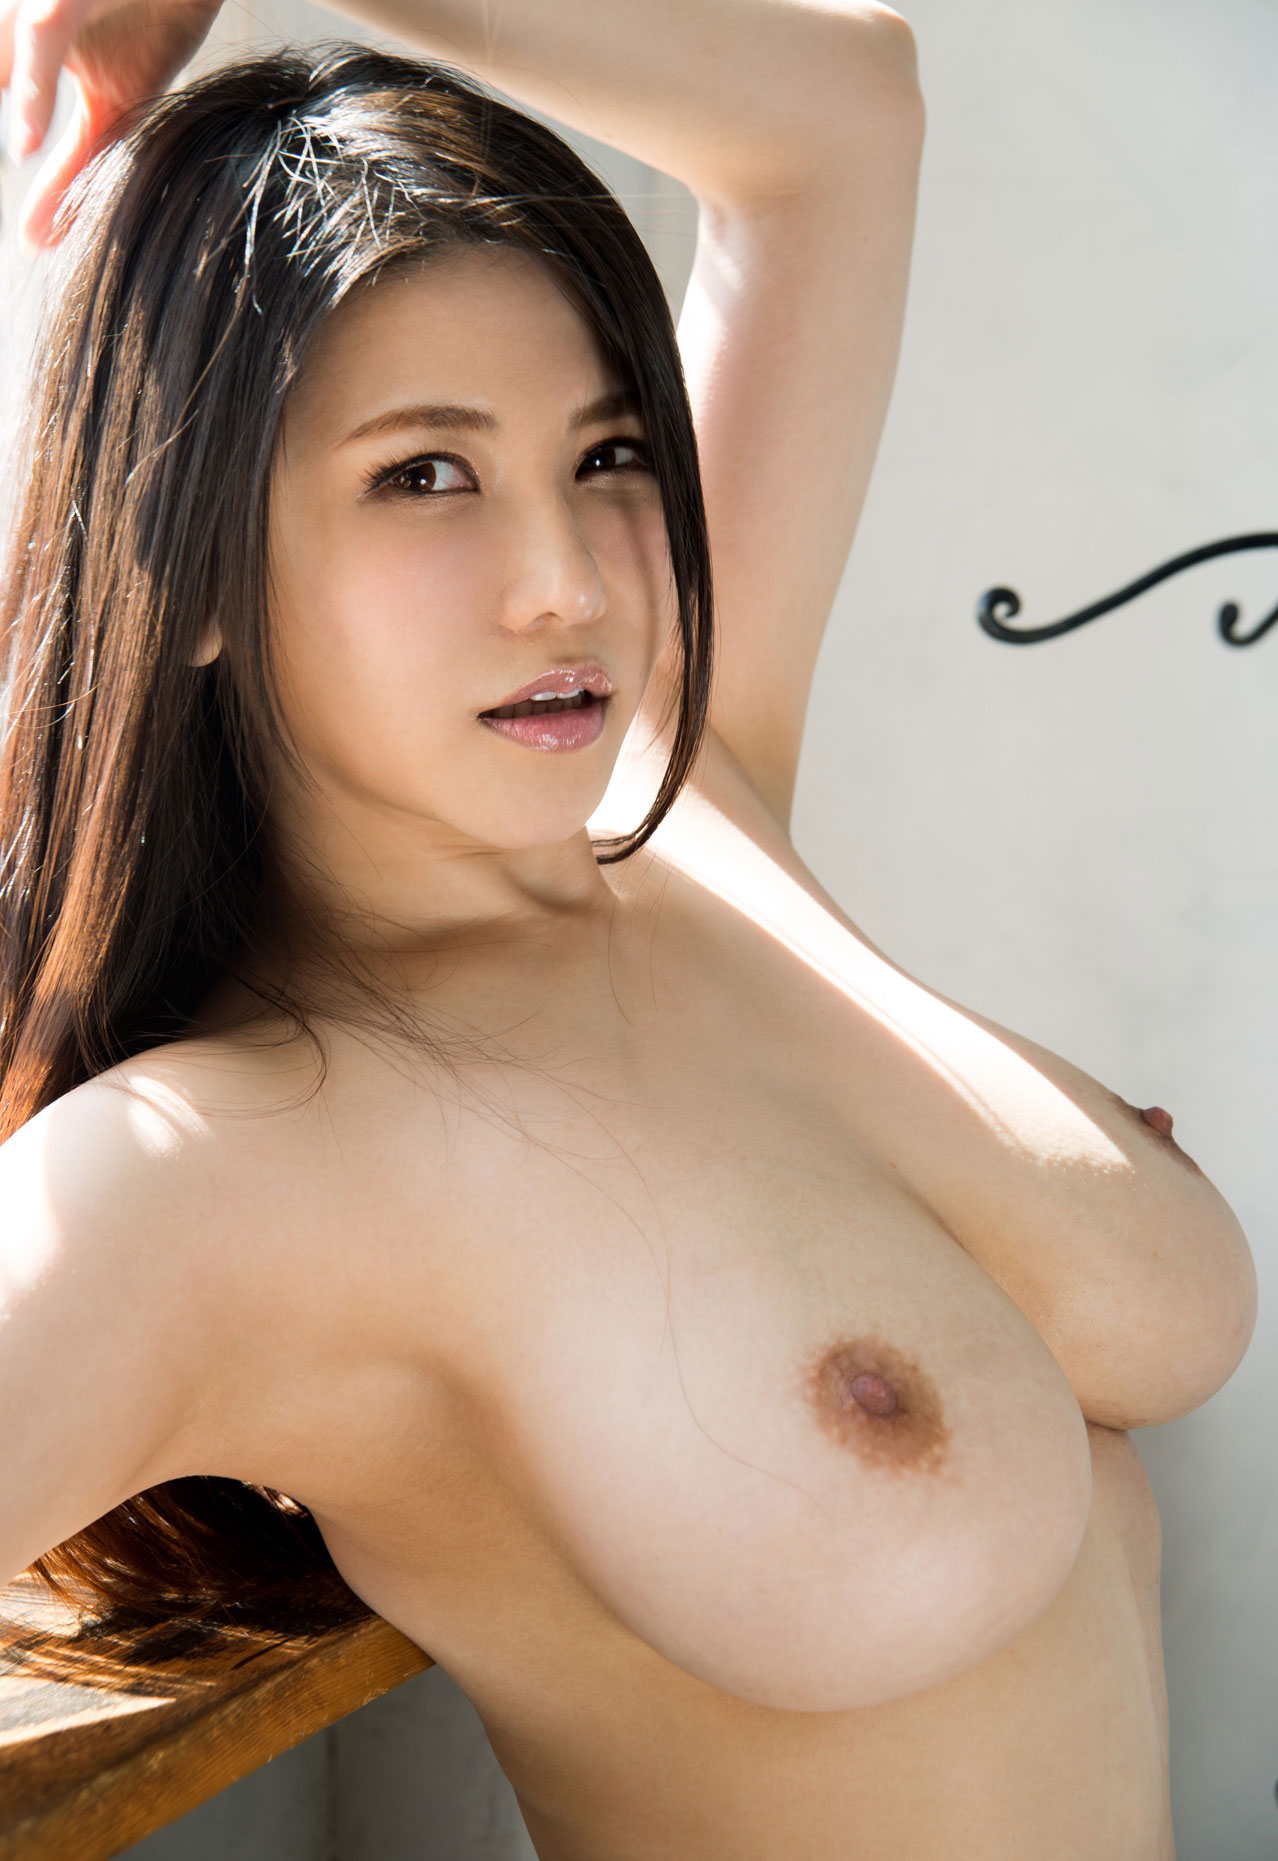 Anri okita nude pictures rating